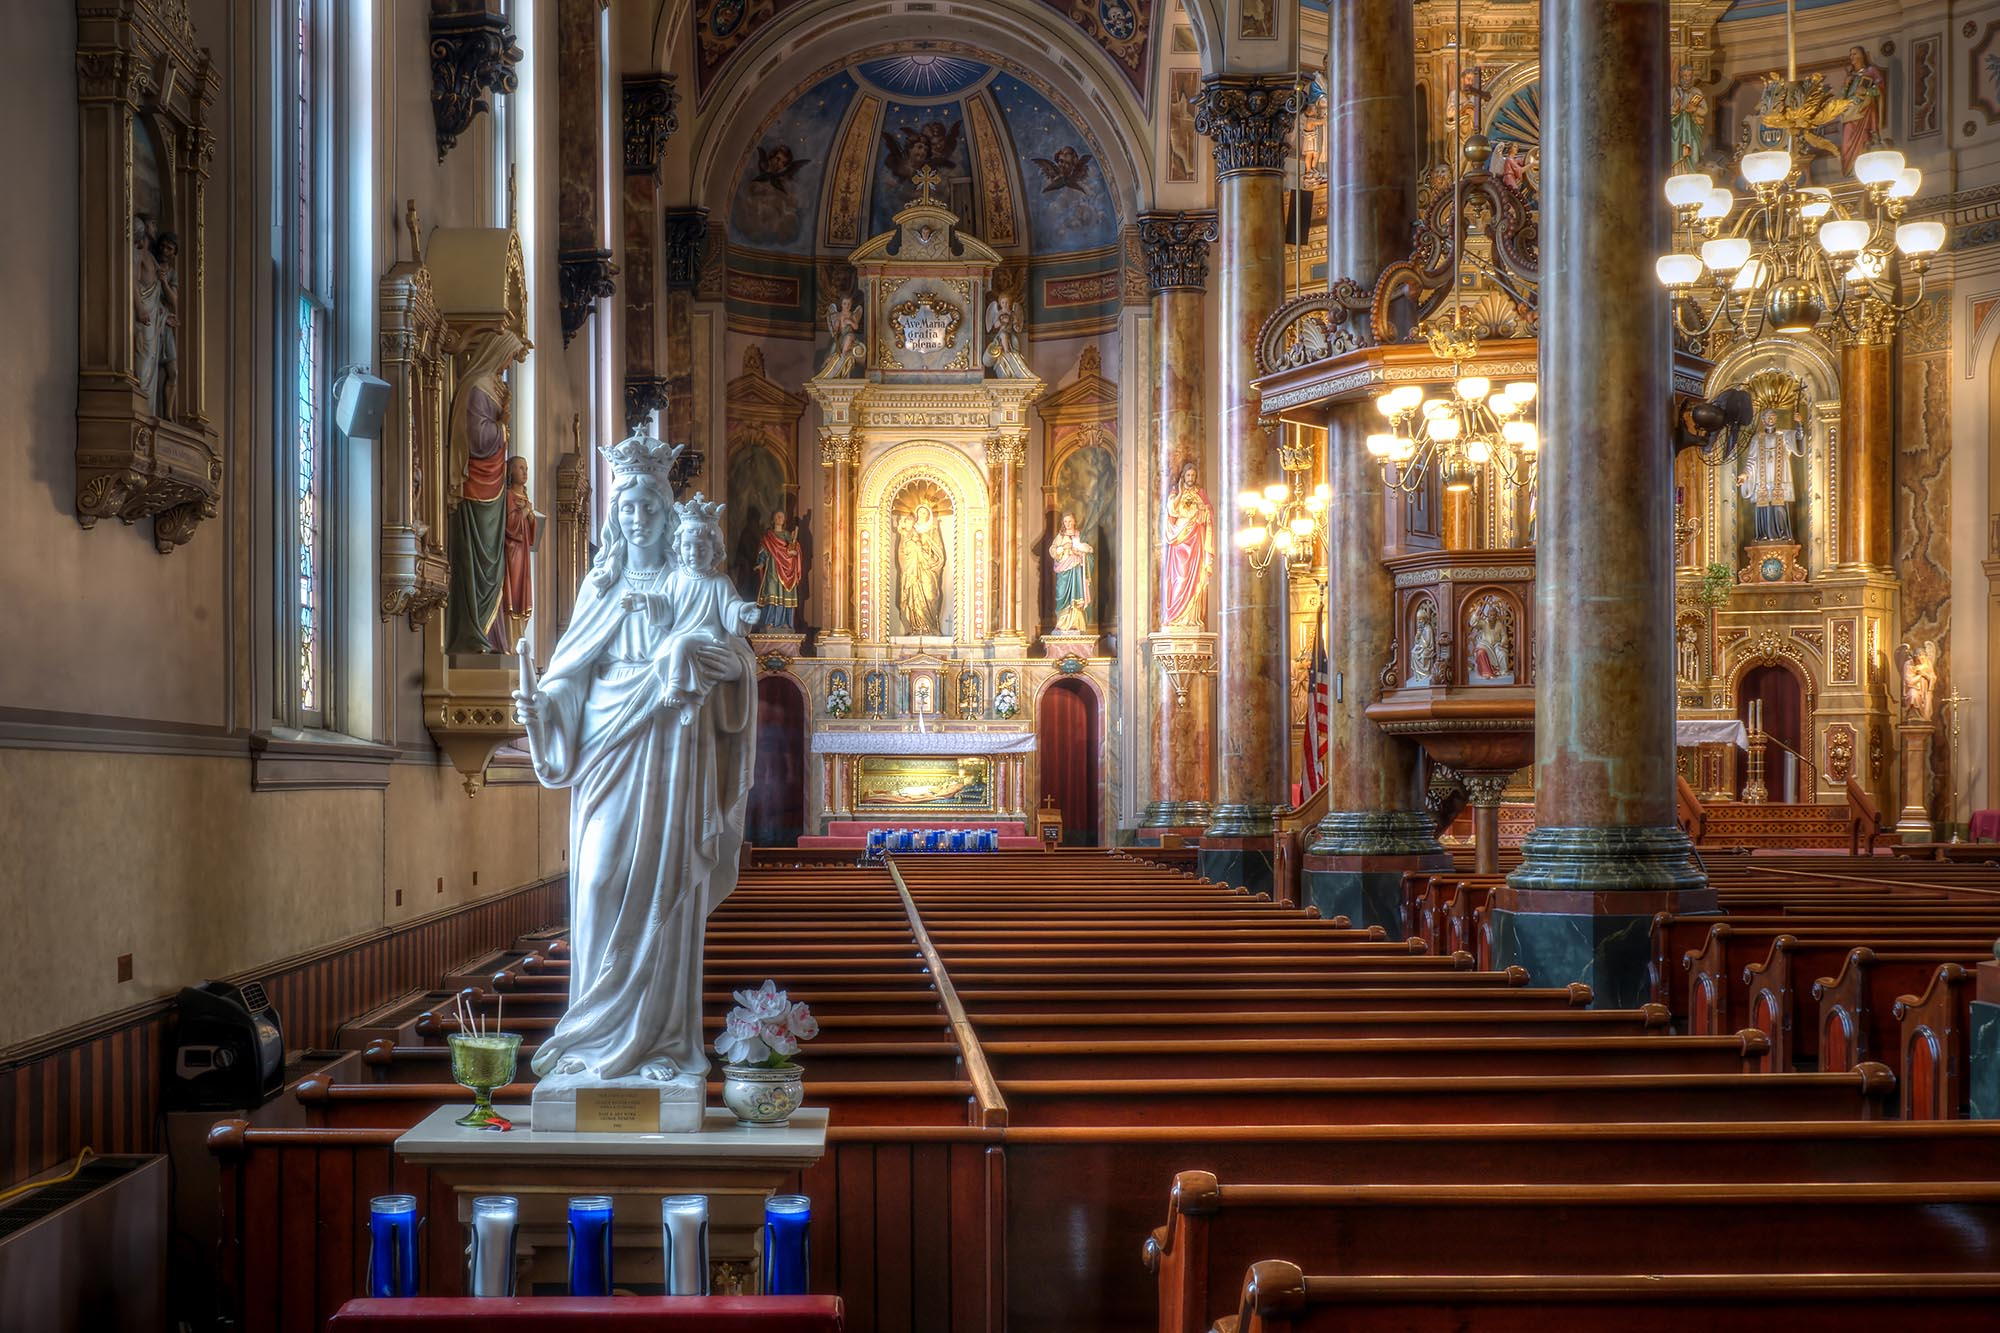 Shrine of St. Joseph Church, St. Louis, Missouri - Mark_Polege